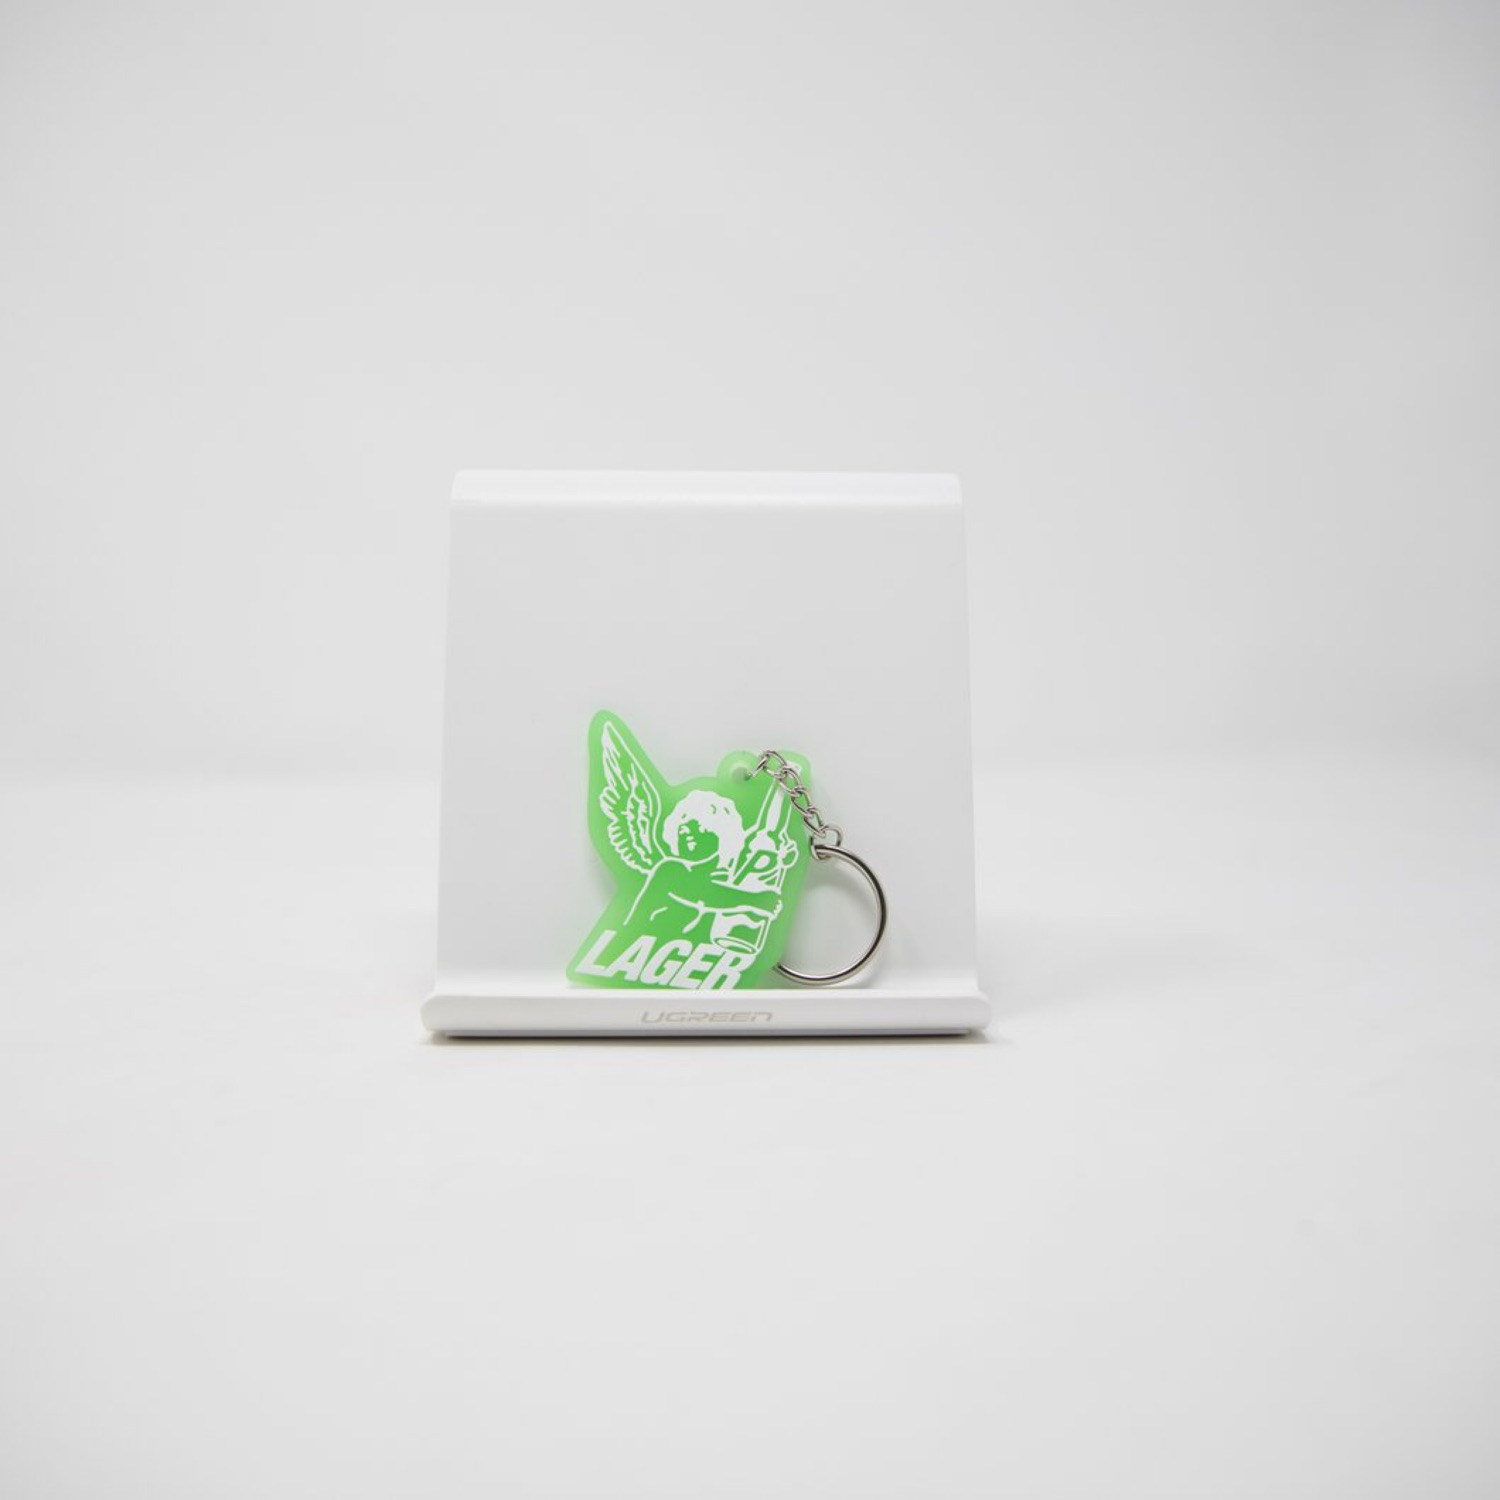 Palace Lager Keychain (Mint)